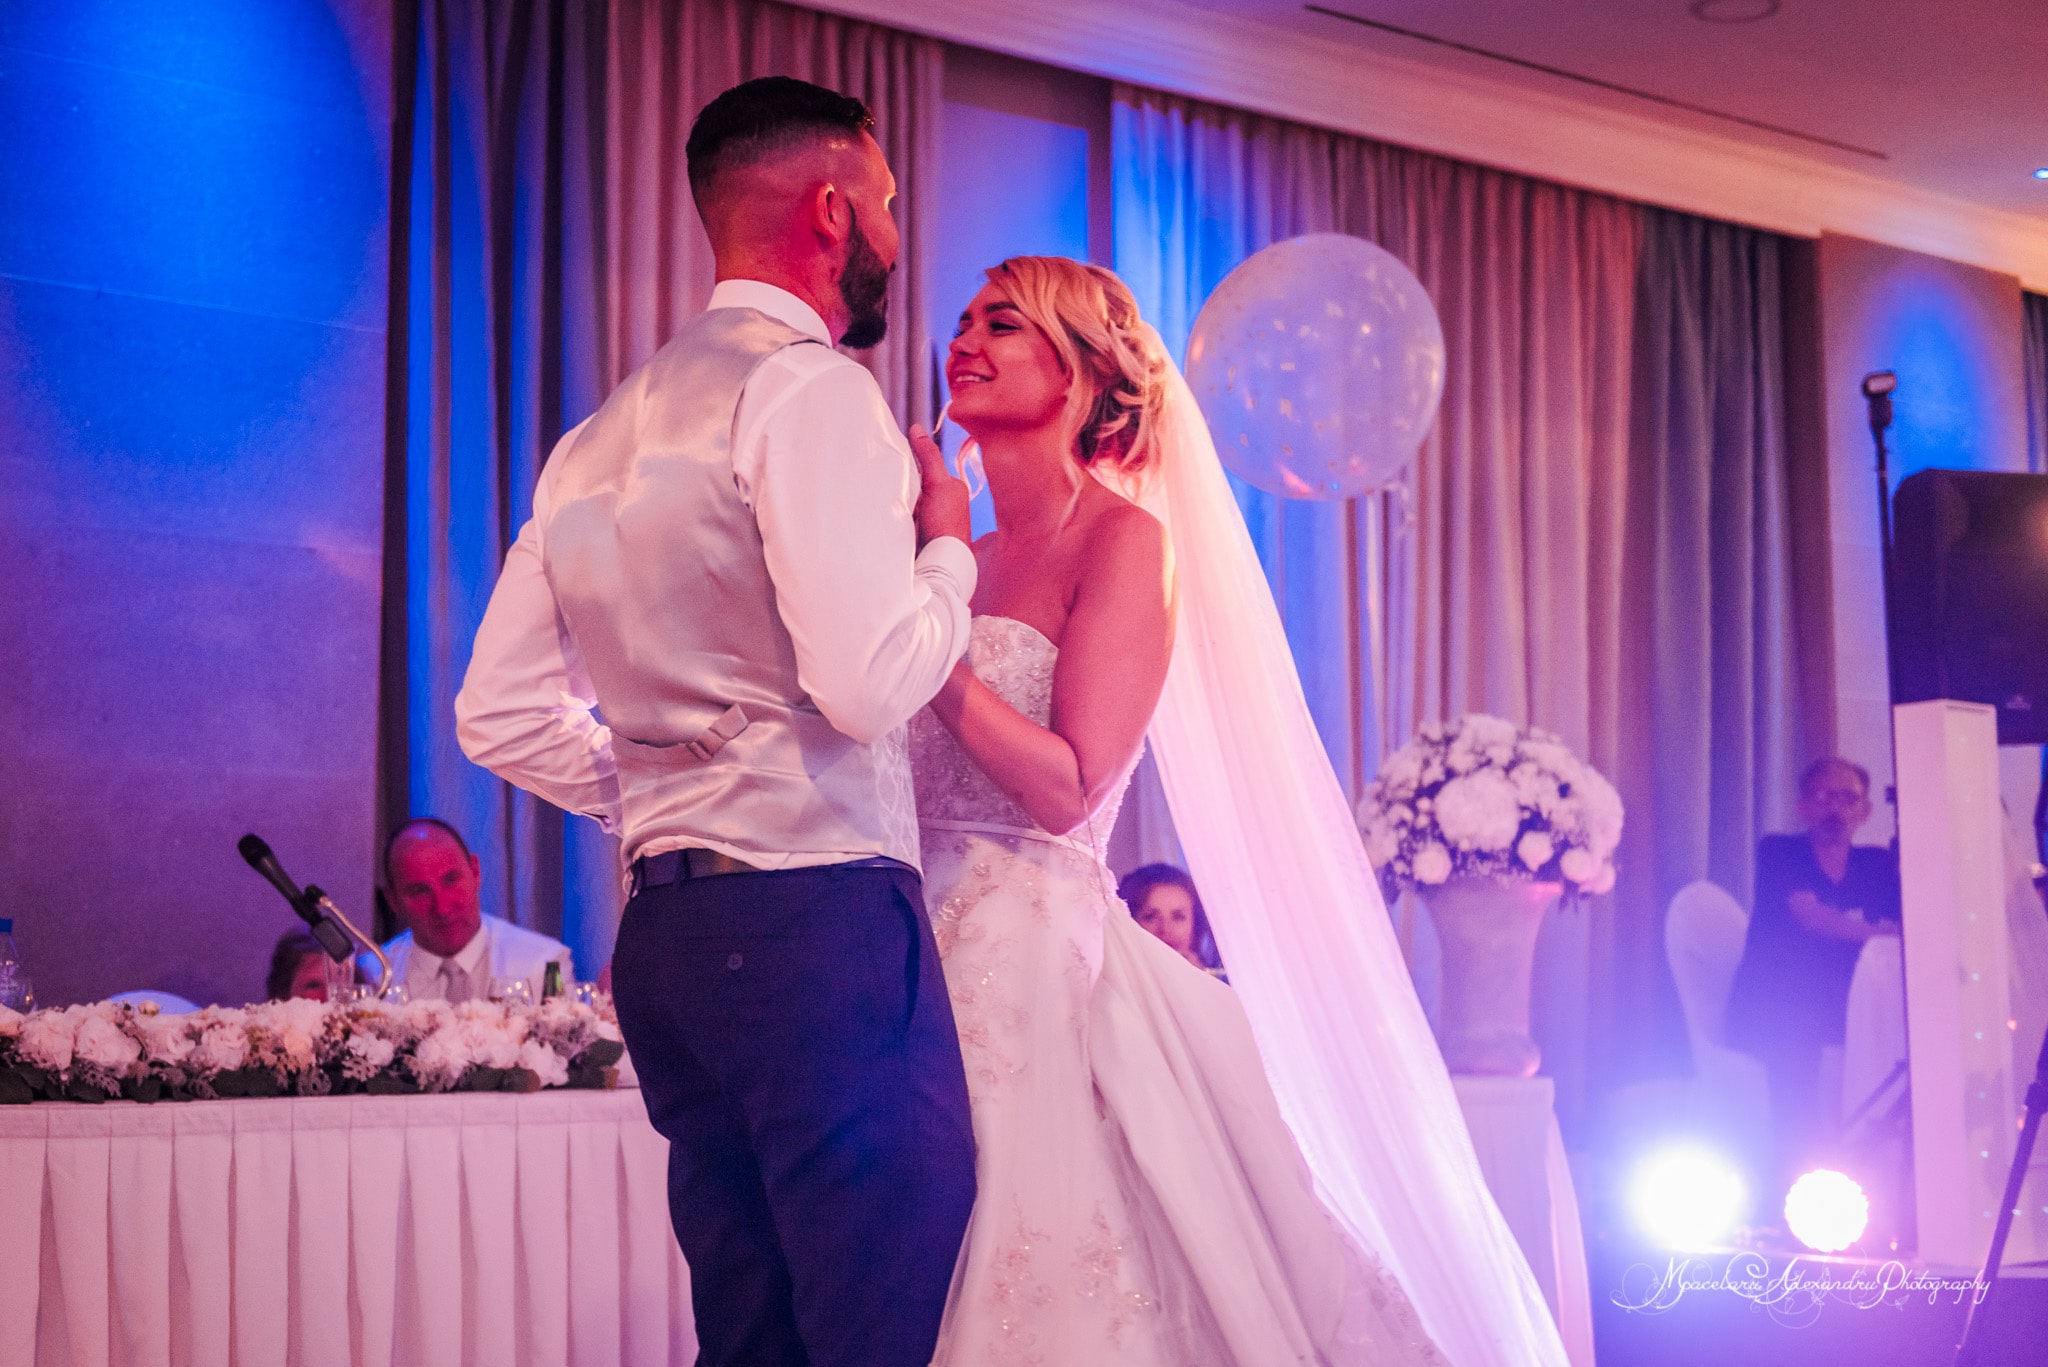 Wedding photography in Paphos - Bride and Groom first dance